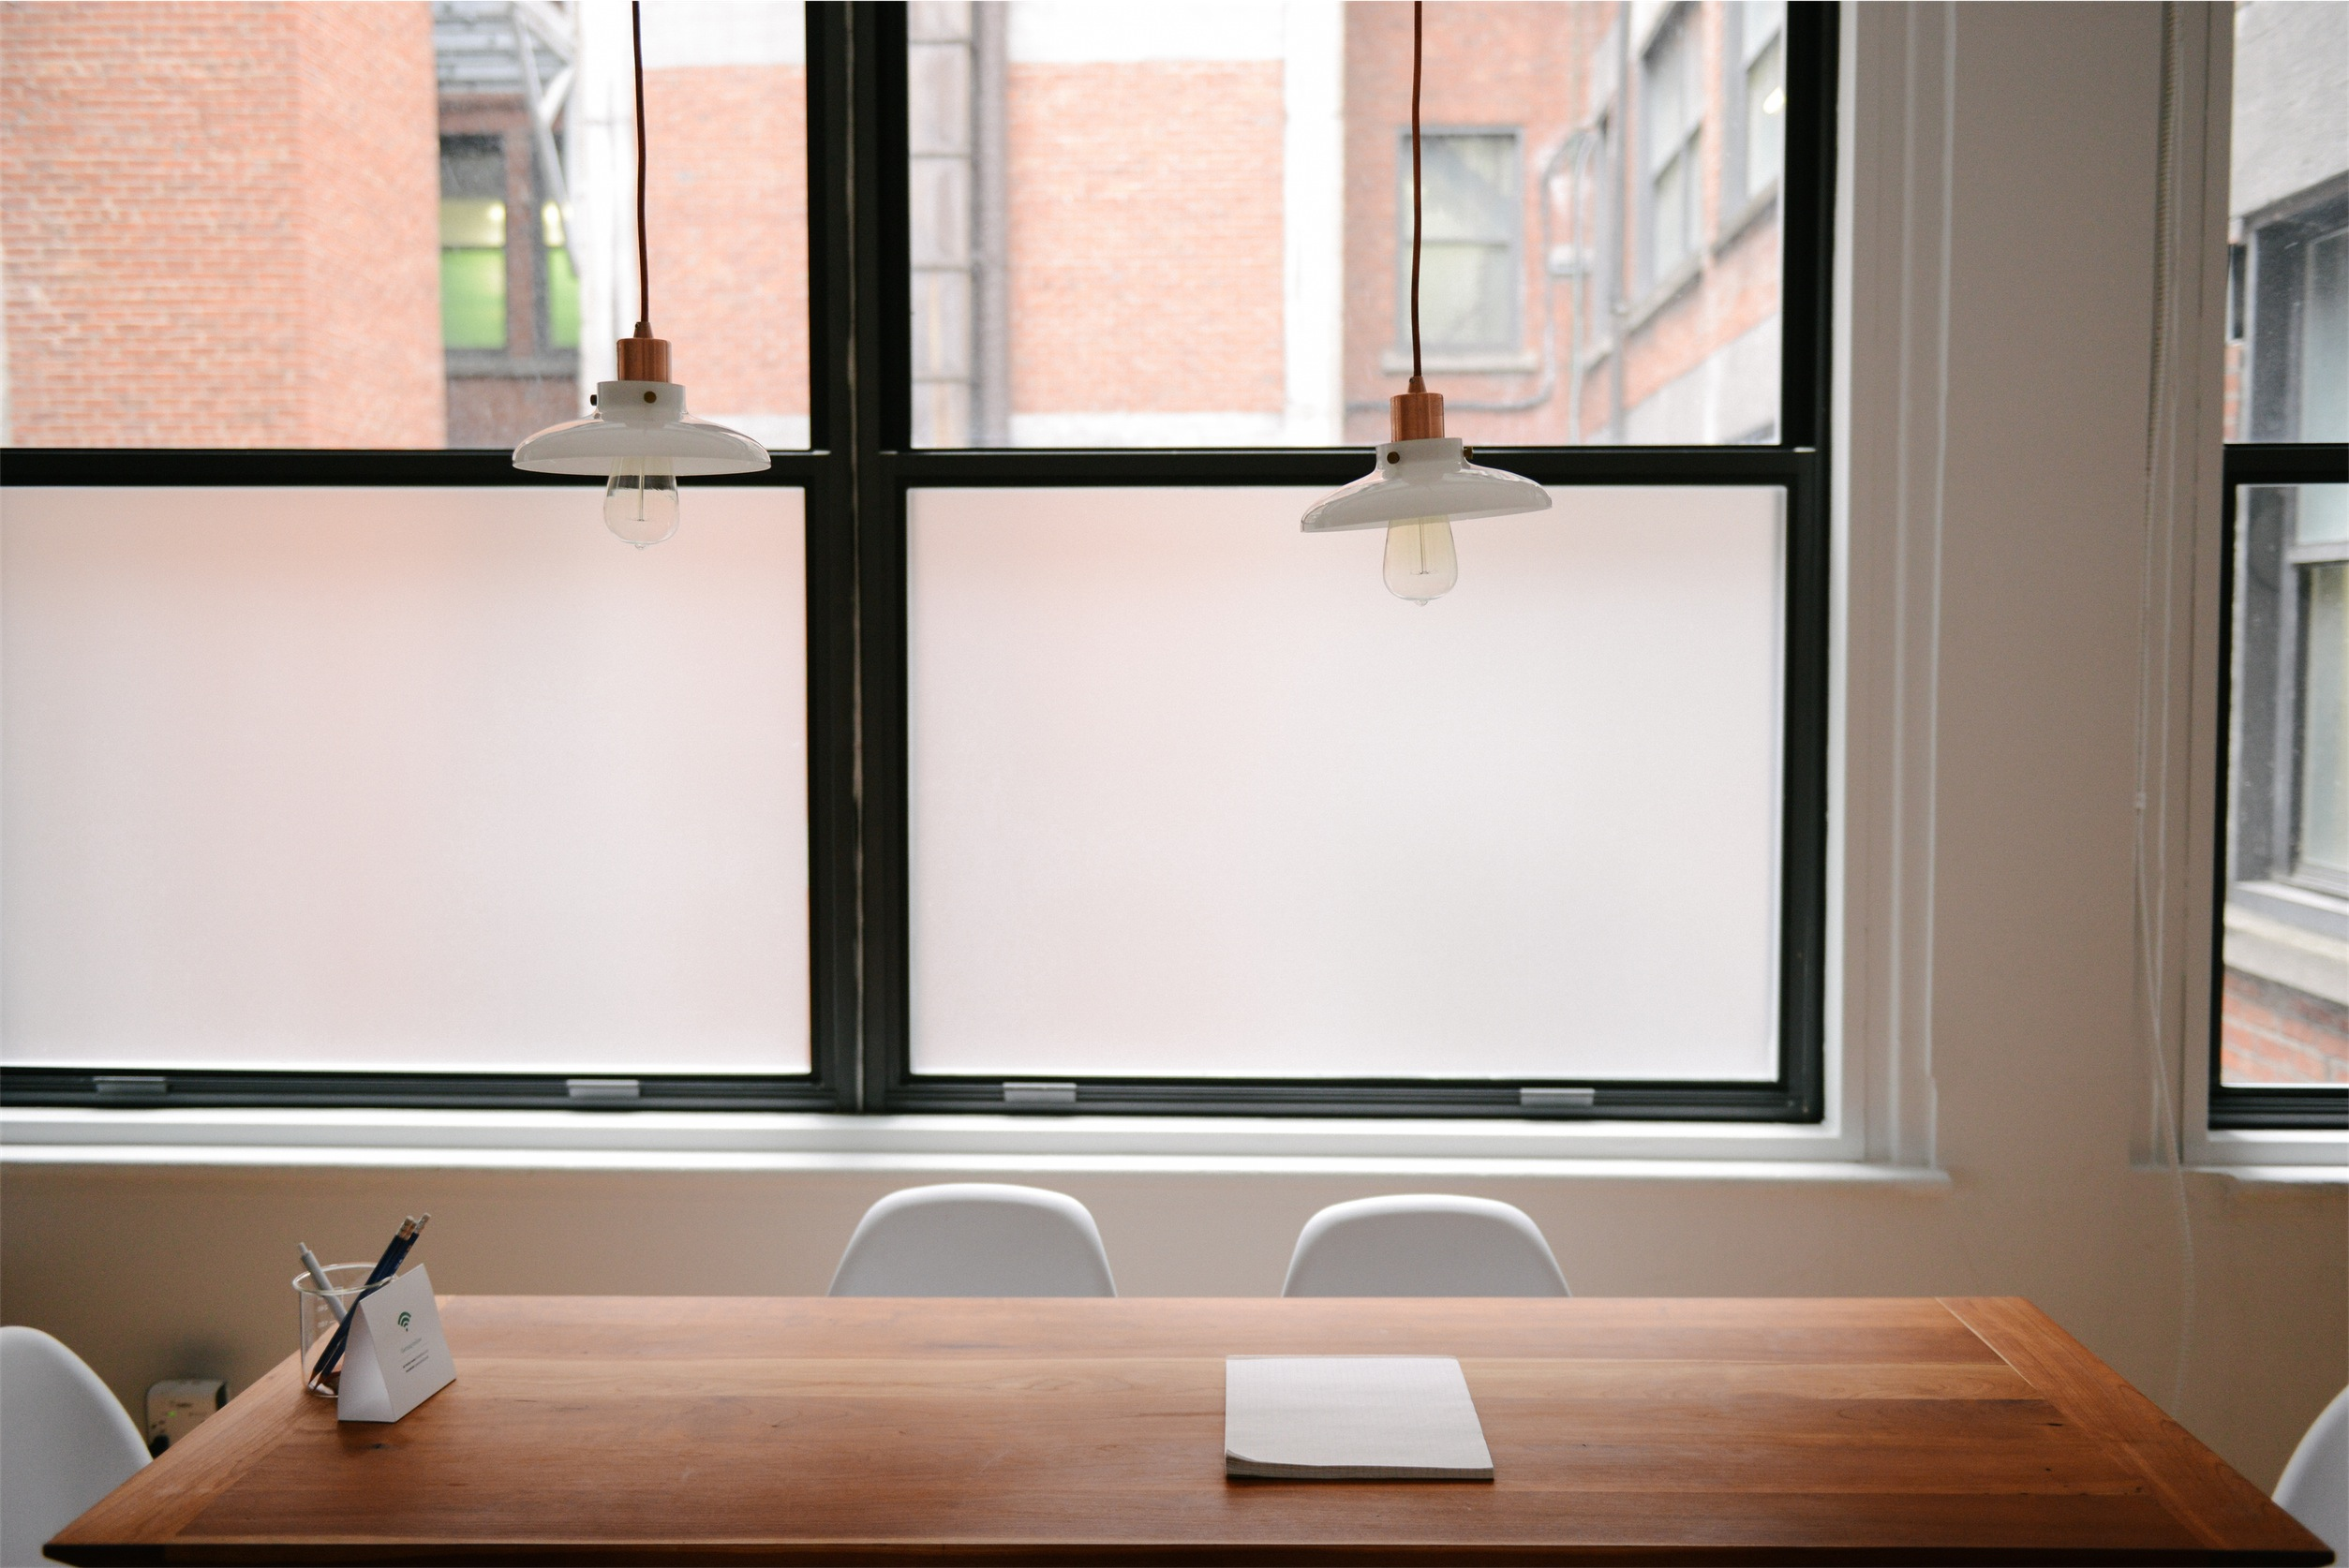 What You Need to Know About Renovating Your Office